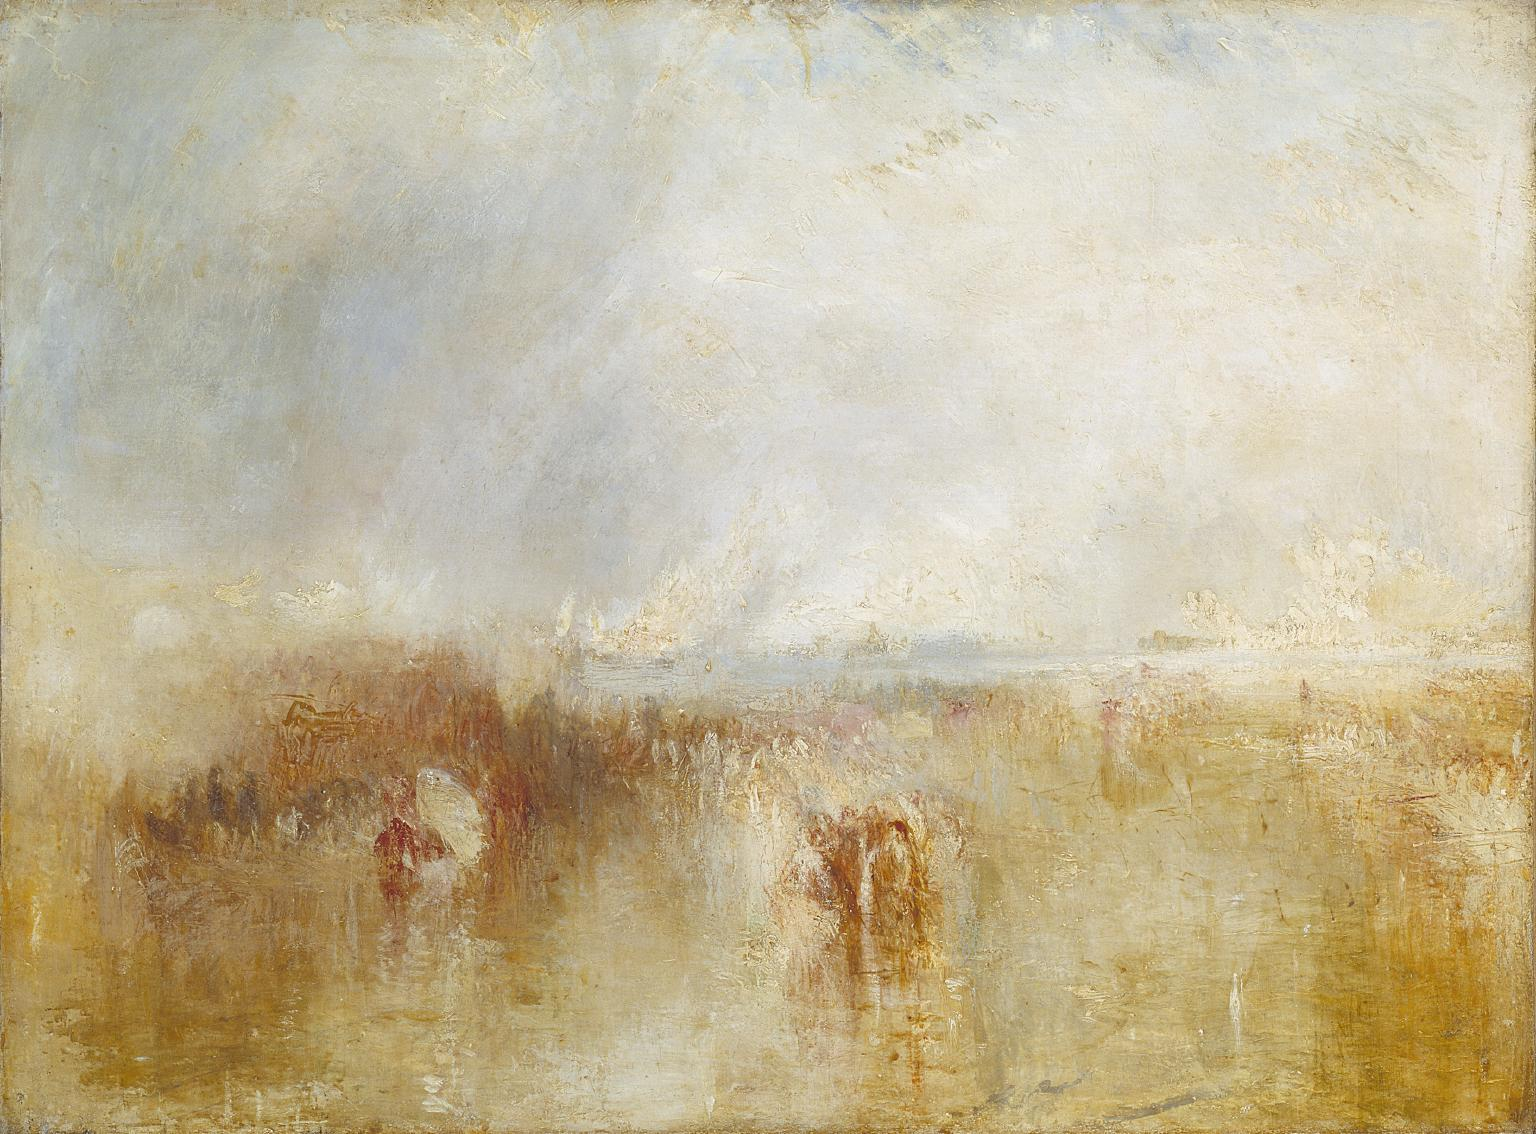 The Arrival of Louis-Philippe at the Royal Clarence Yard, Gosport, 8 October 1844 c.1844-5 by Joseph Mallord William Turner 1775-1851